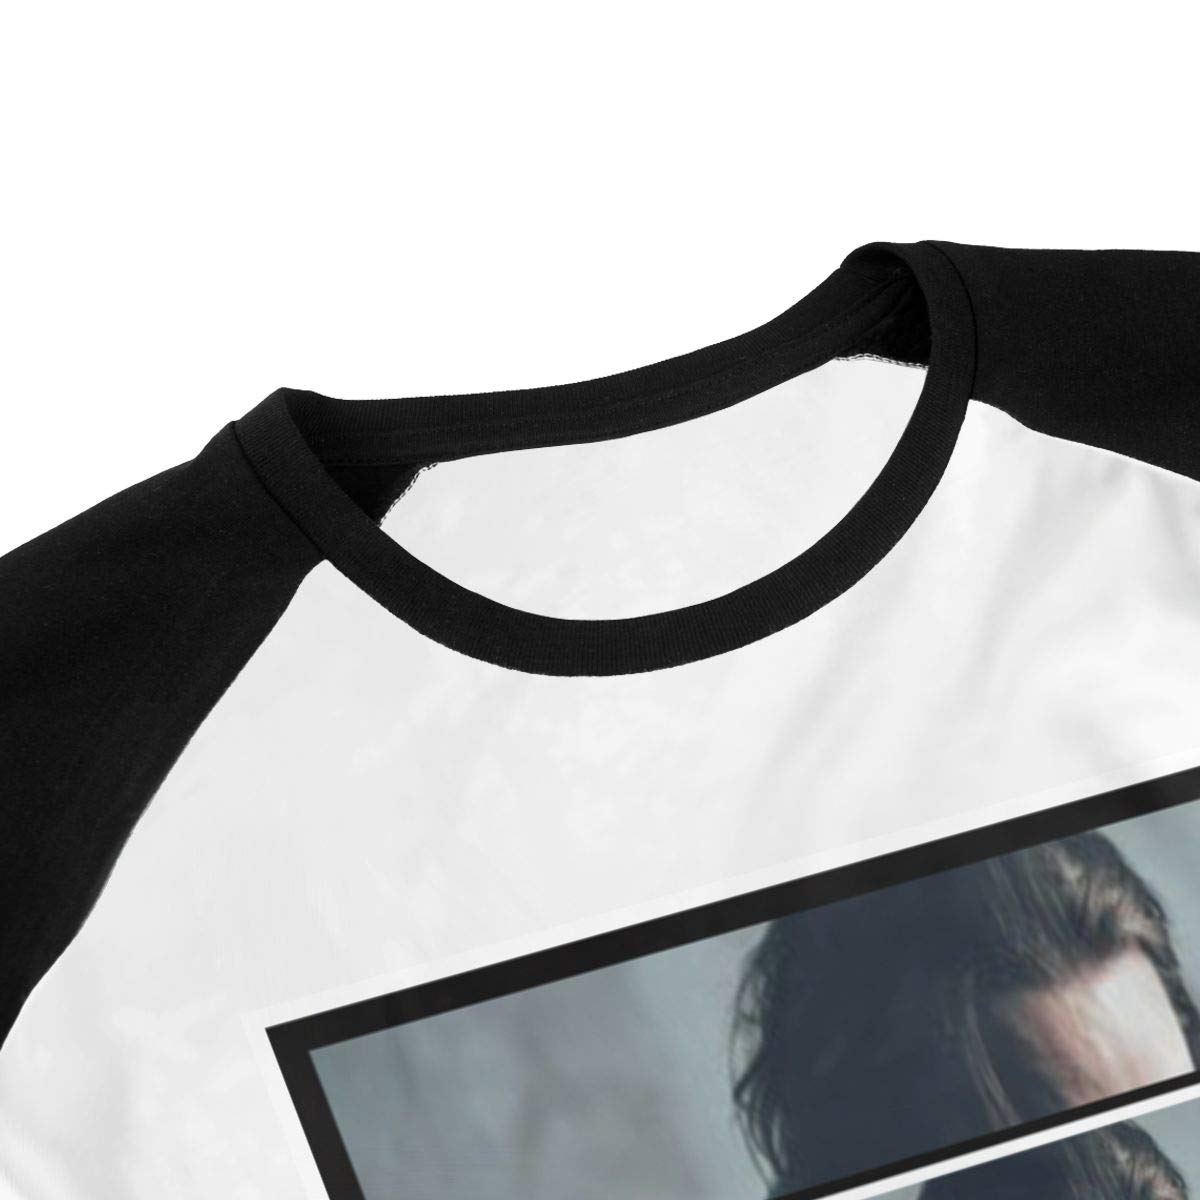 Lfsky Lewis Capaldi Youth Casual Style Fashion Lightweight Music Enthusiasts 3D Print t Shirt